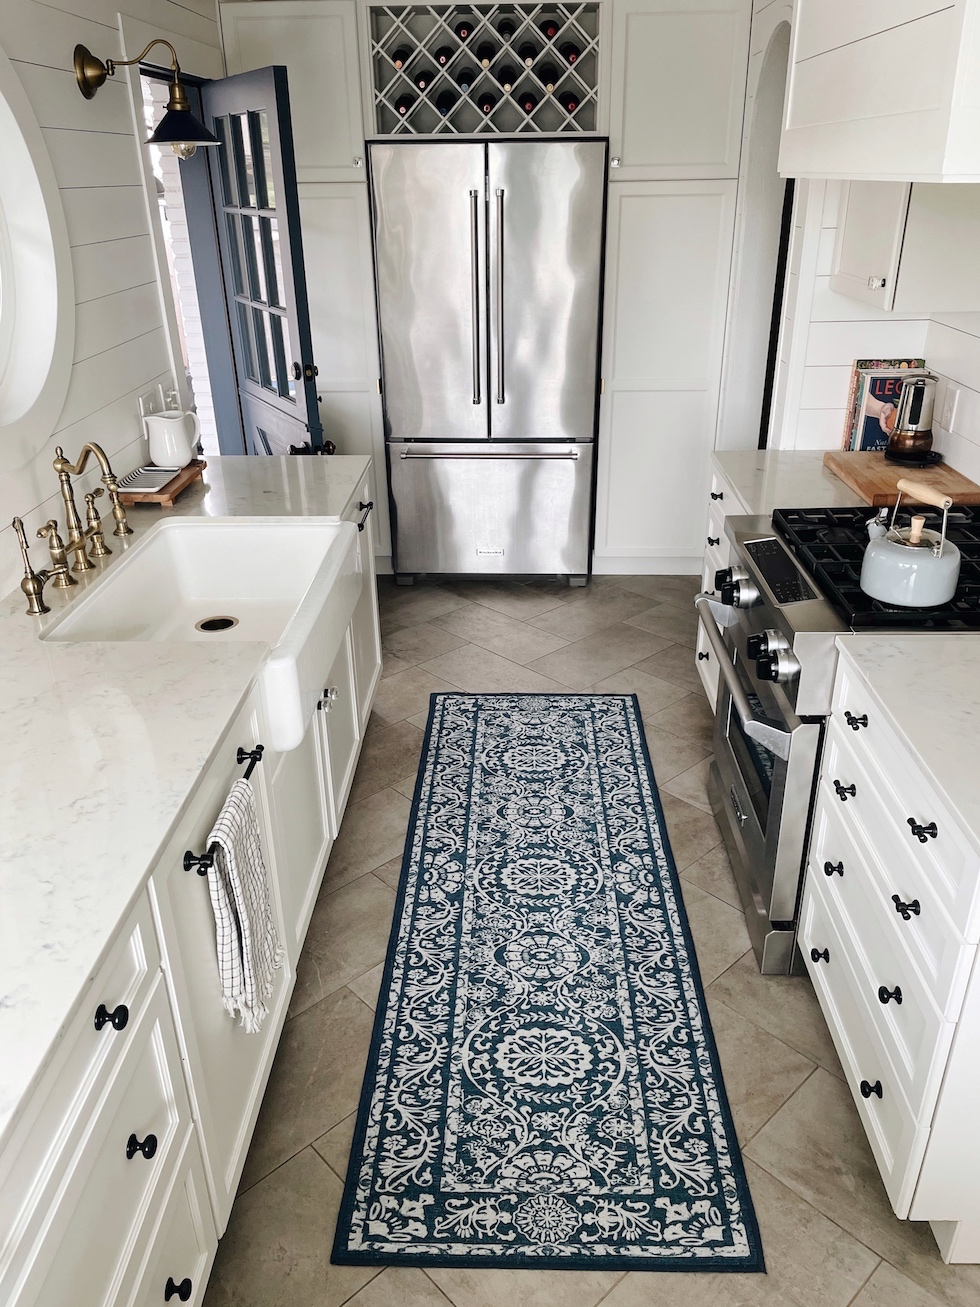 New kitchen runner (+ My honest thoughts on ruggable rugs and favorite patterns)